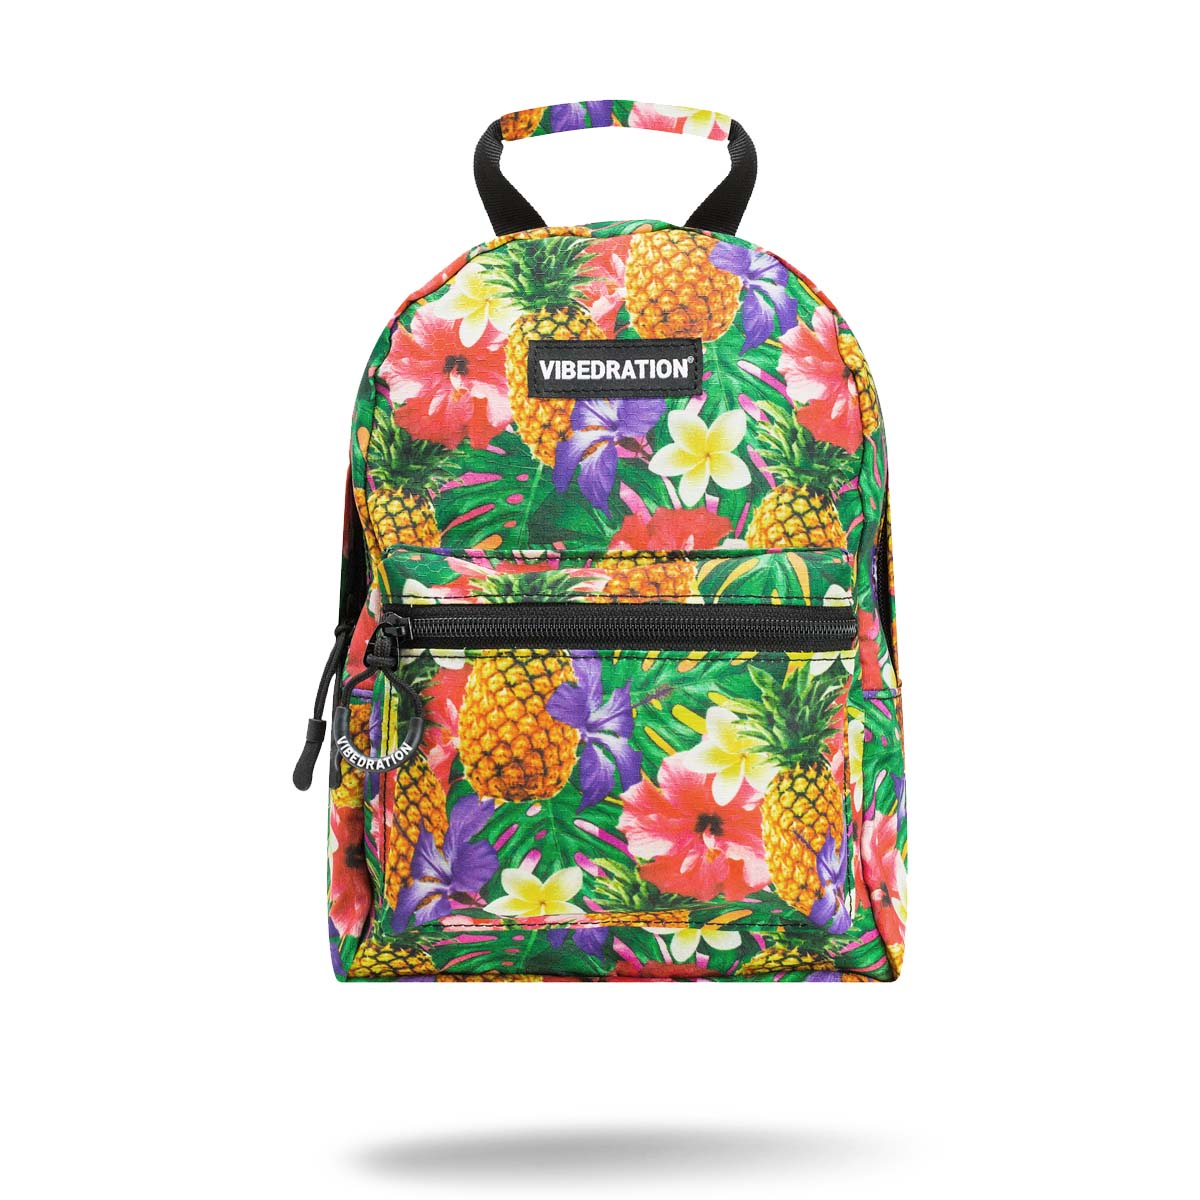 Hawaiian printed mini backpack for festivals